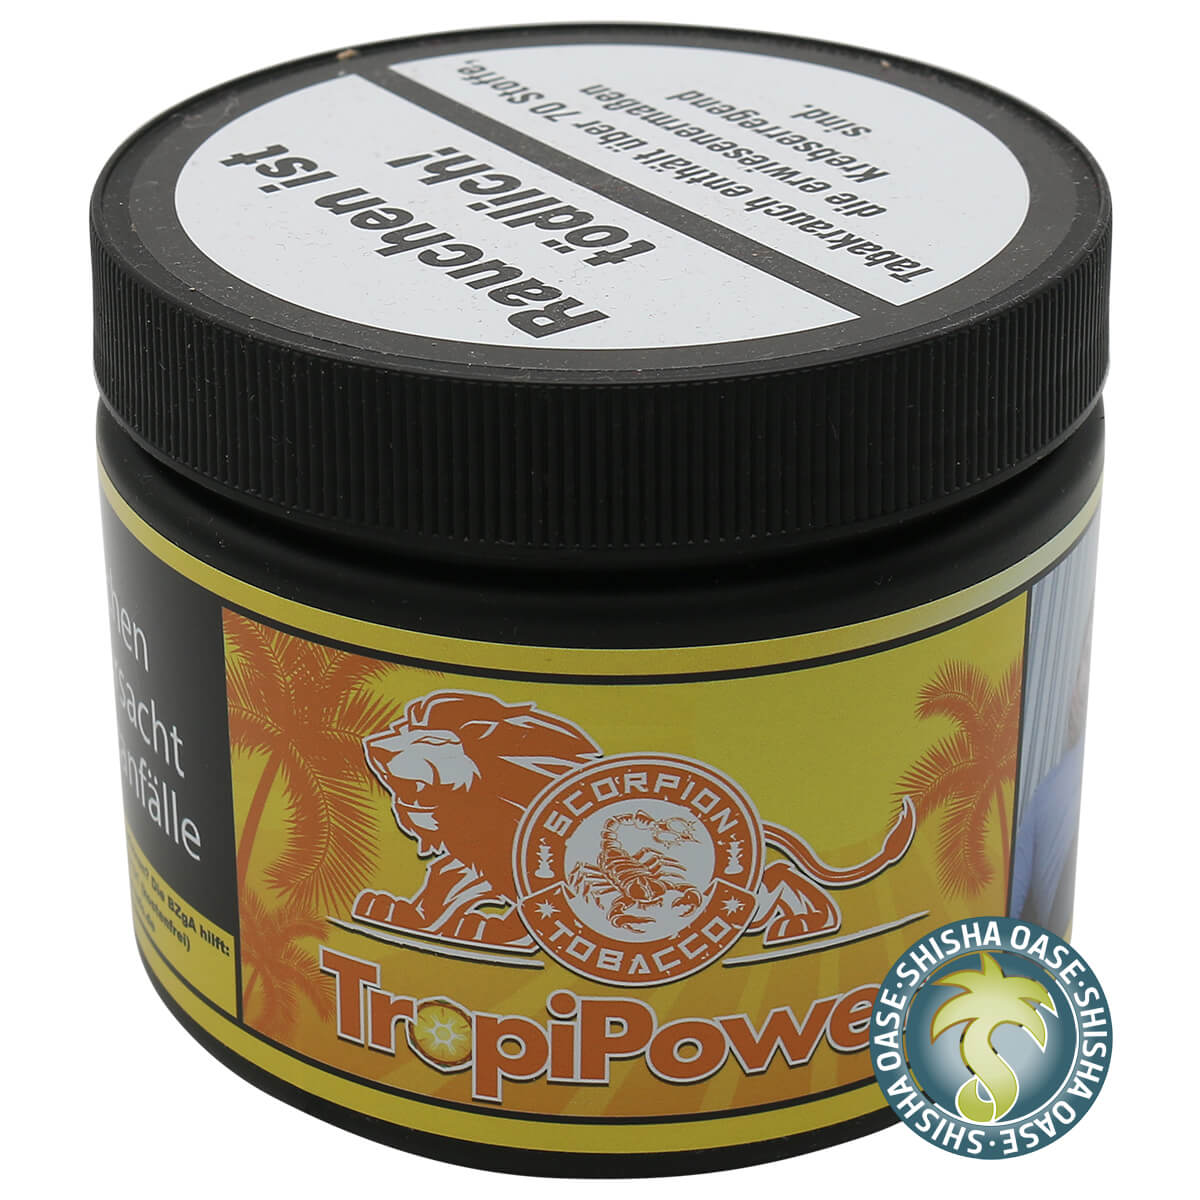 Scorpion Tabak 200g Dose | Tropi Power